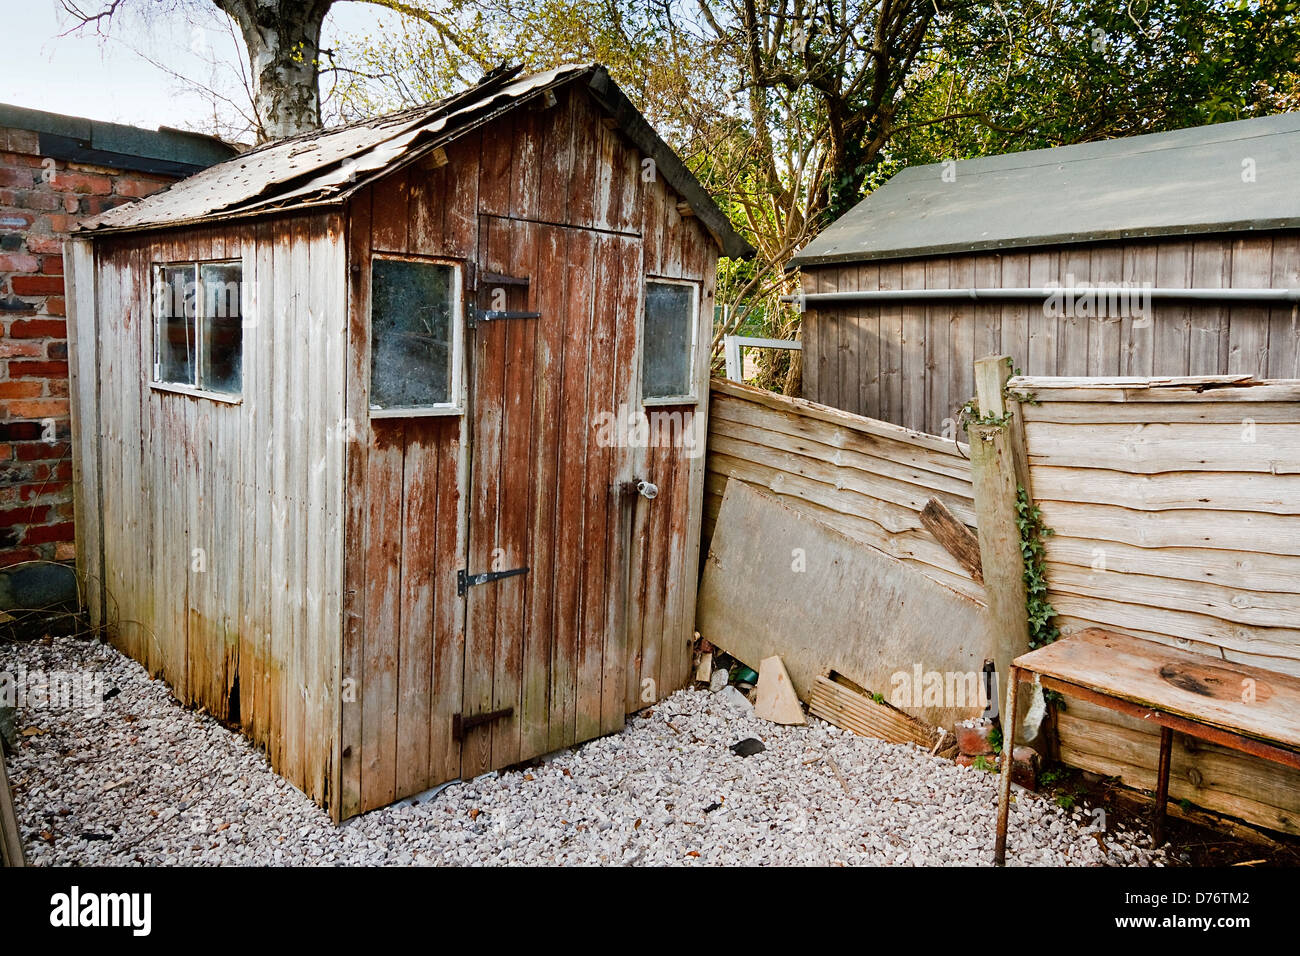 photo on stock white depositphotos sheds background wooden shed garden archideaphoto